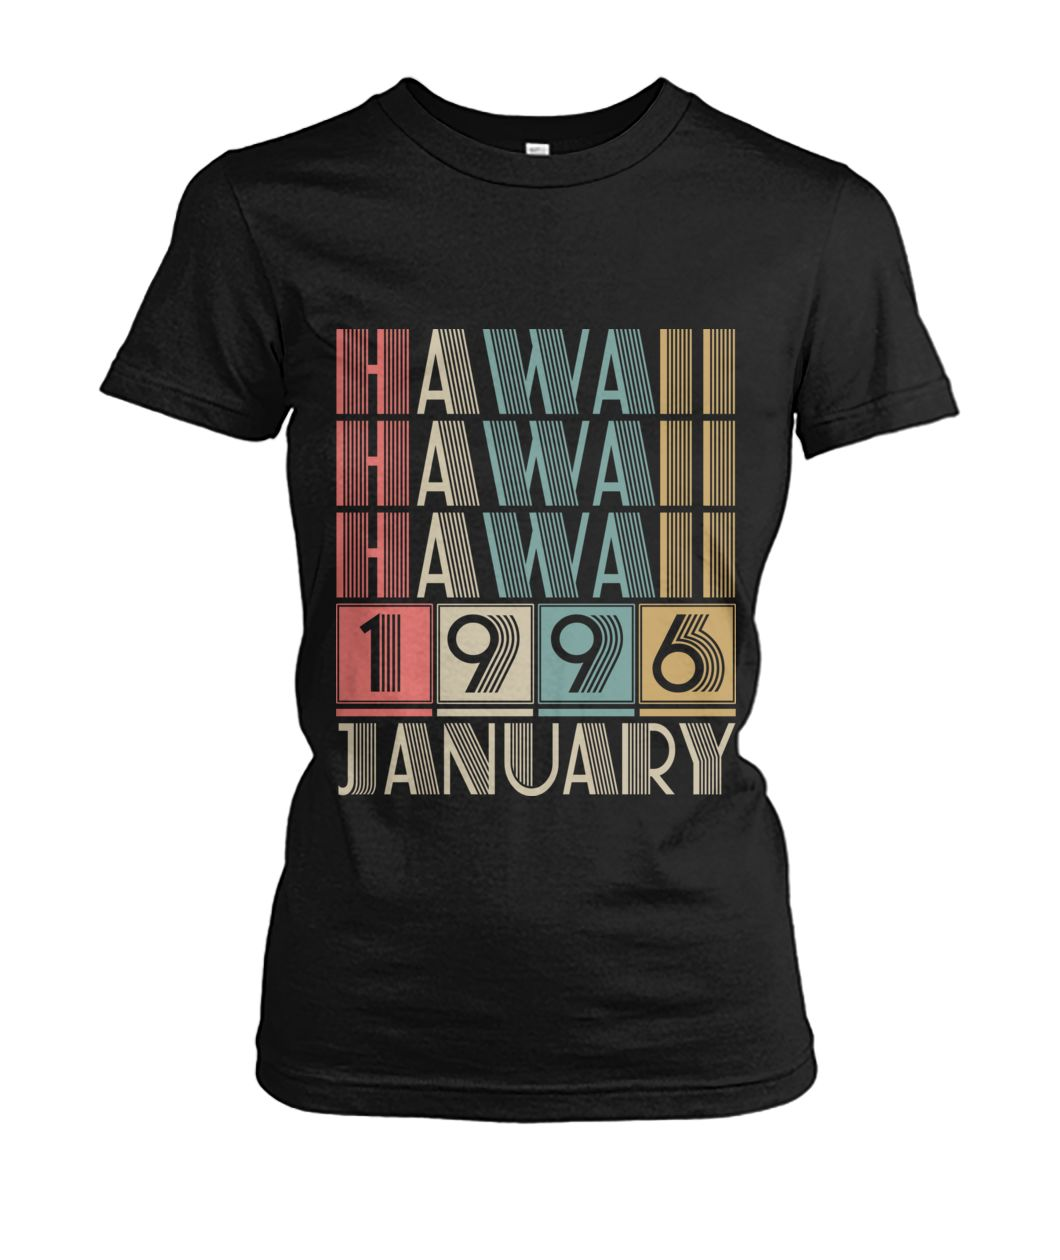 Born in Hawaii in January 1996 t shirt-Short Sleeves - TEEHOT.COM